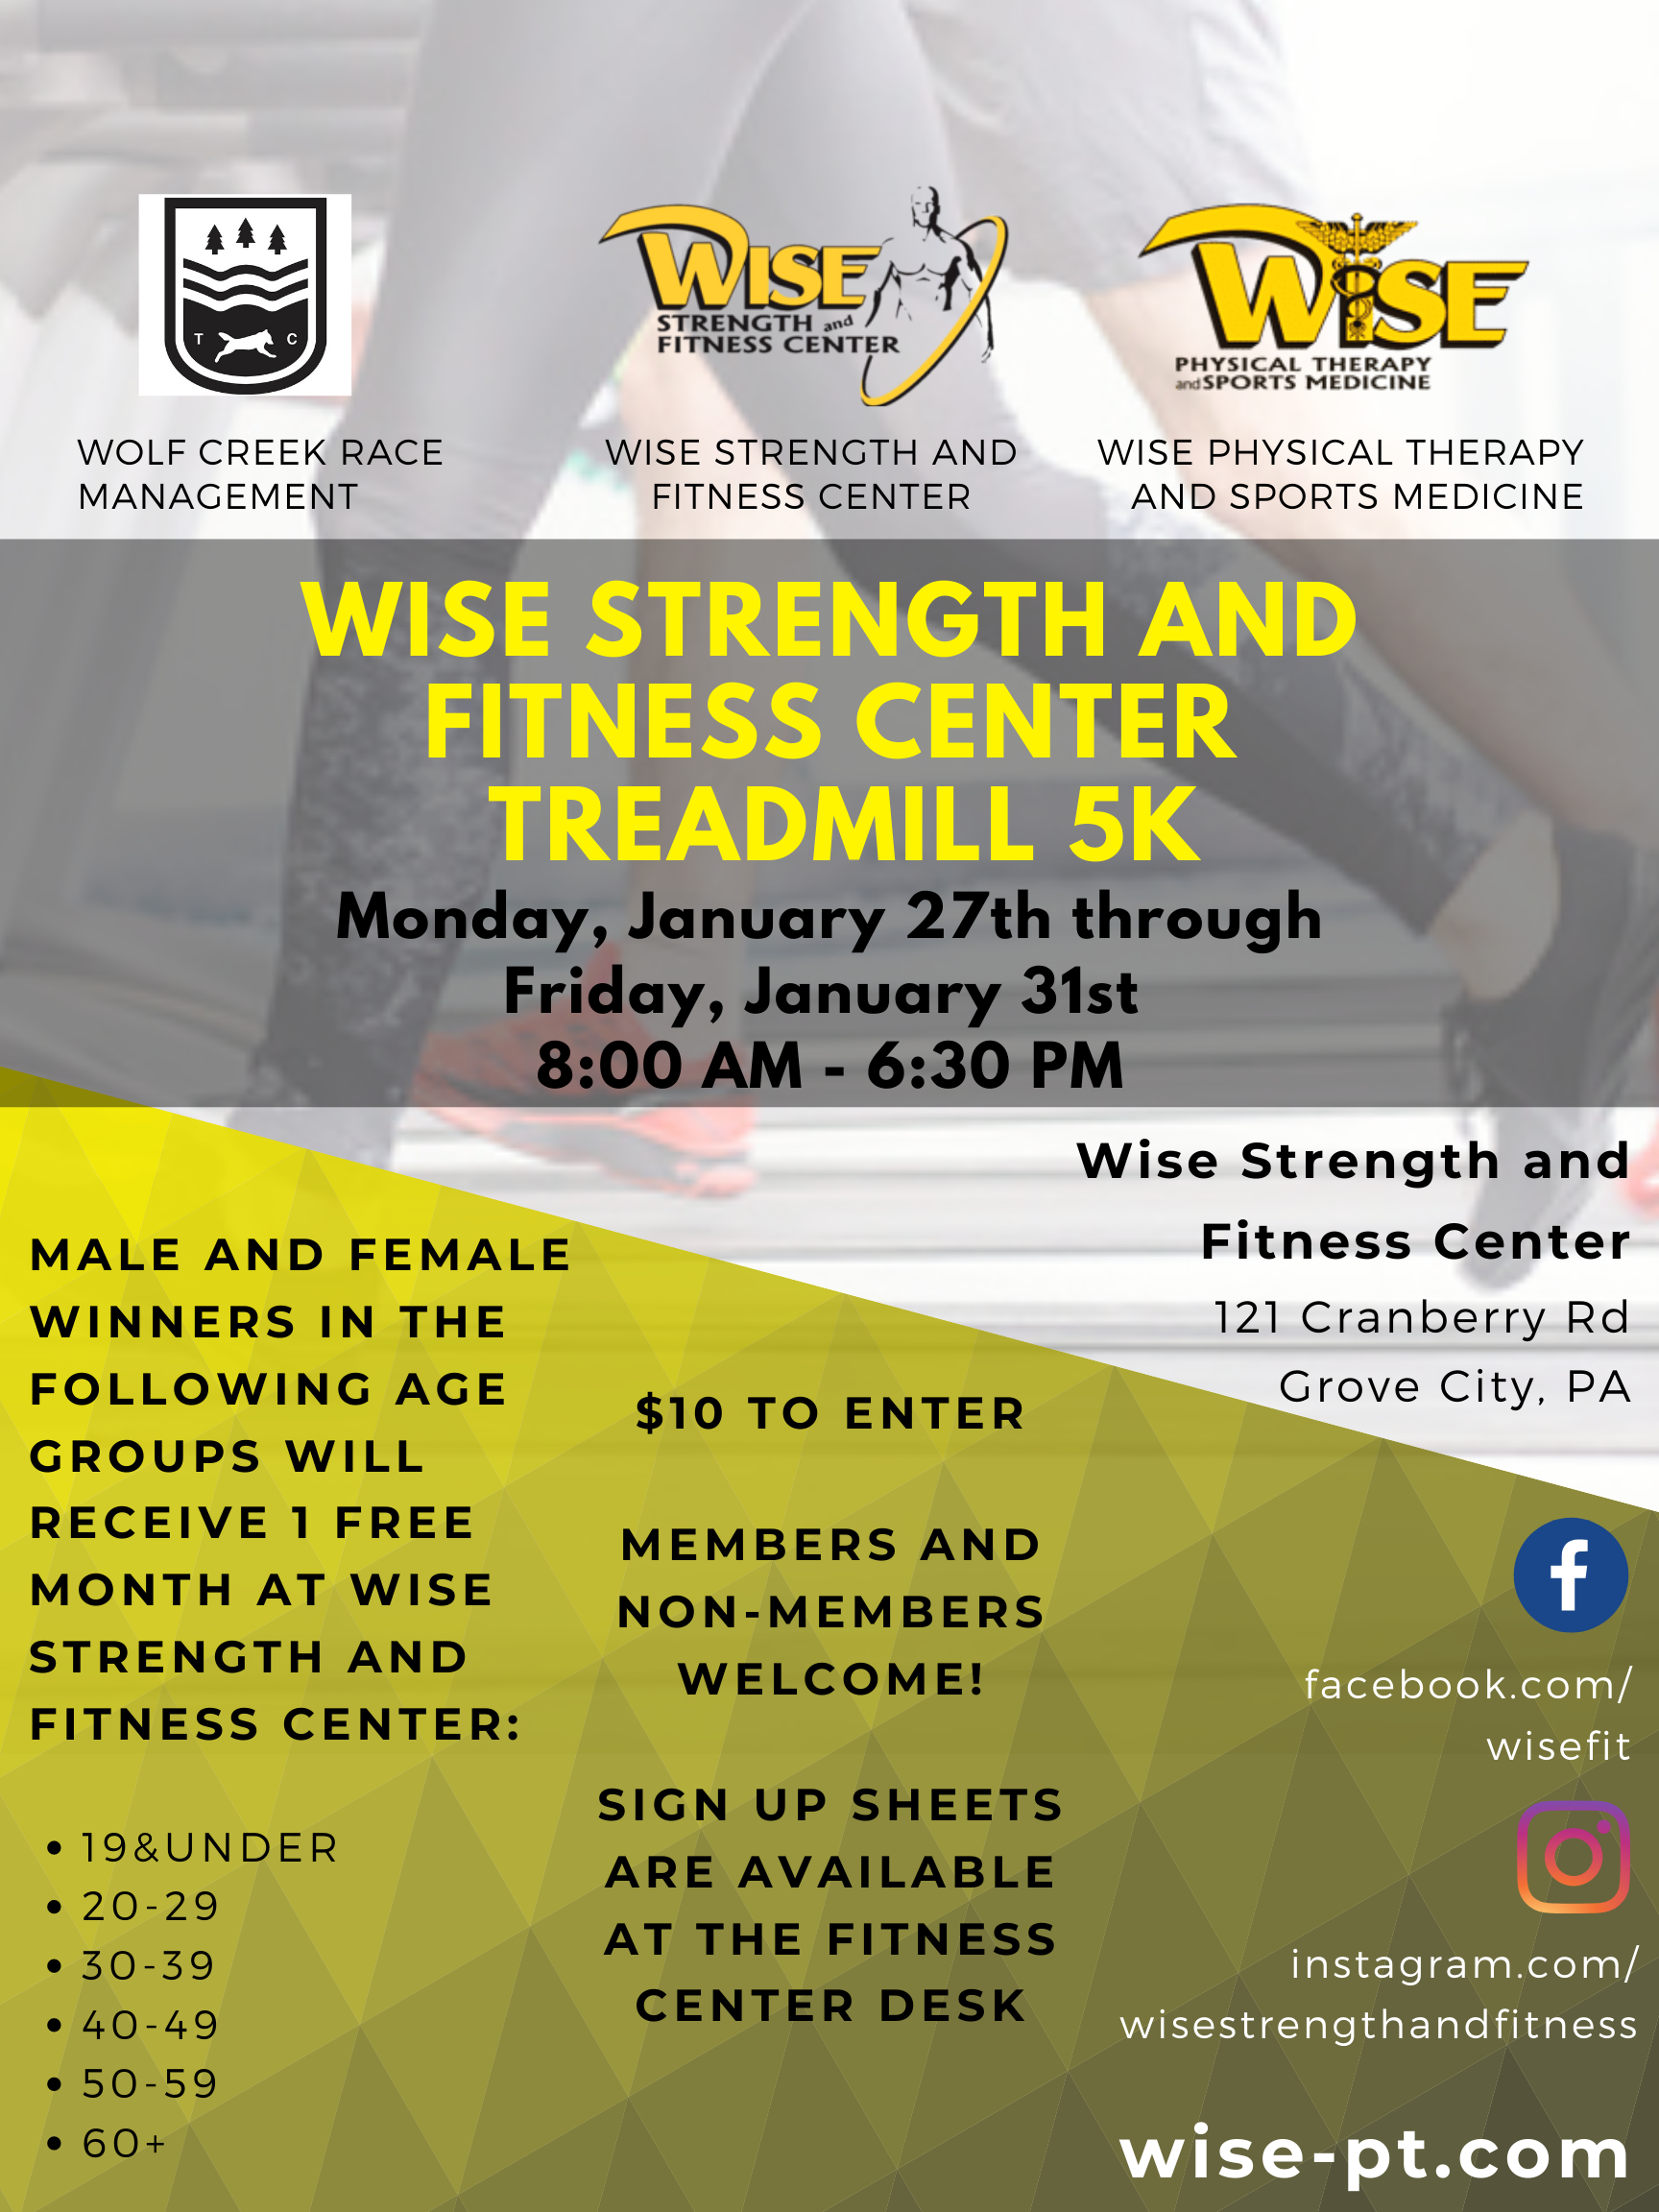 Wise Strength and Fitness Treadmill 5k